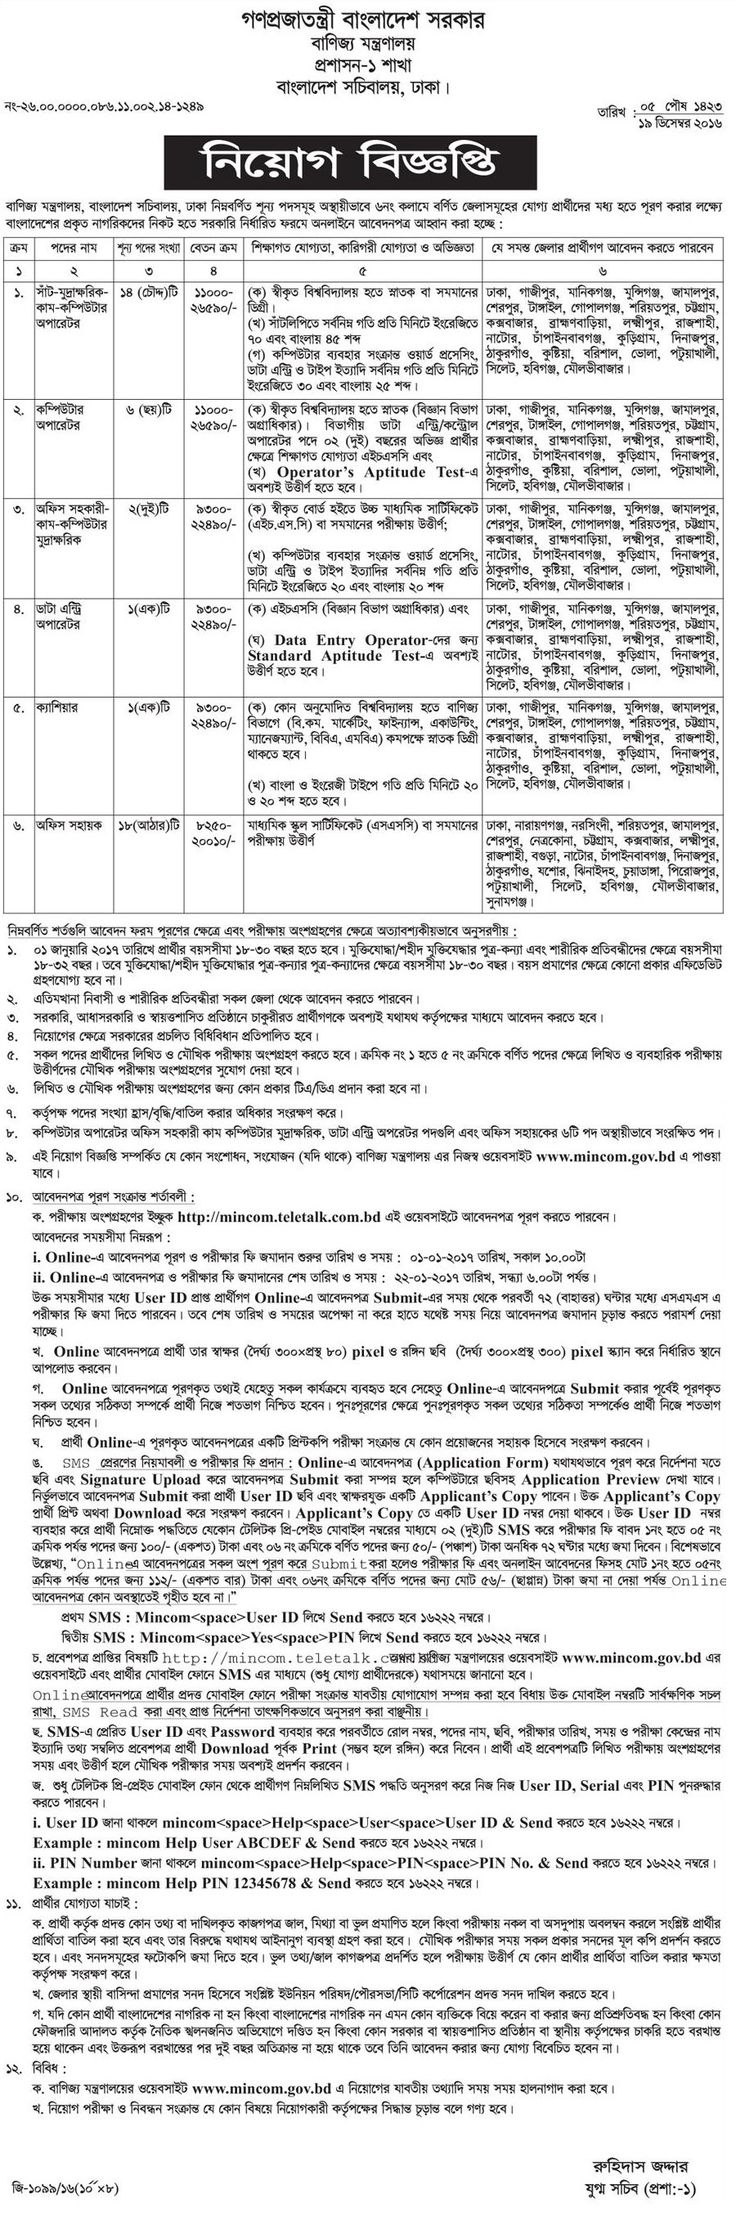 Ministry Of Commerce Job Circular  January 2017